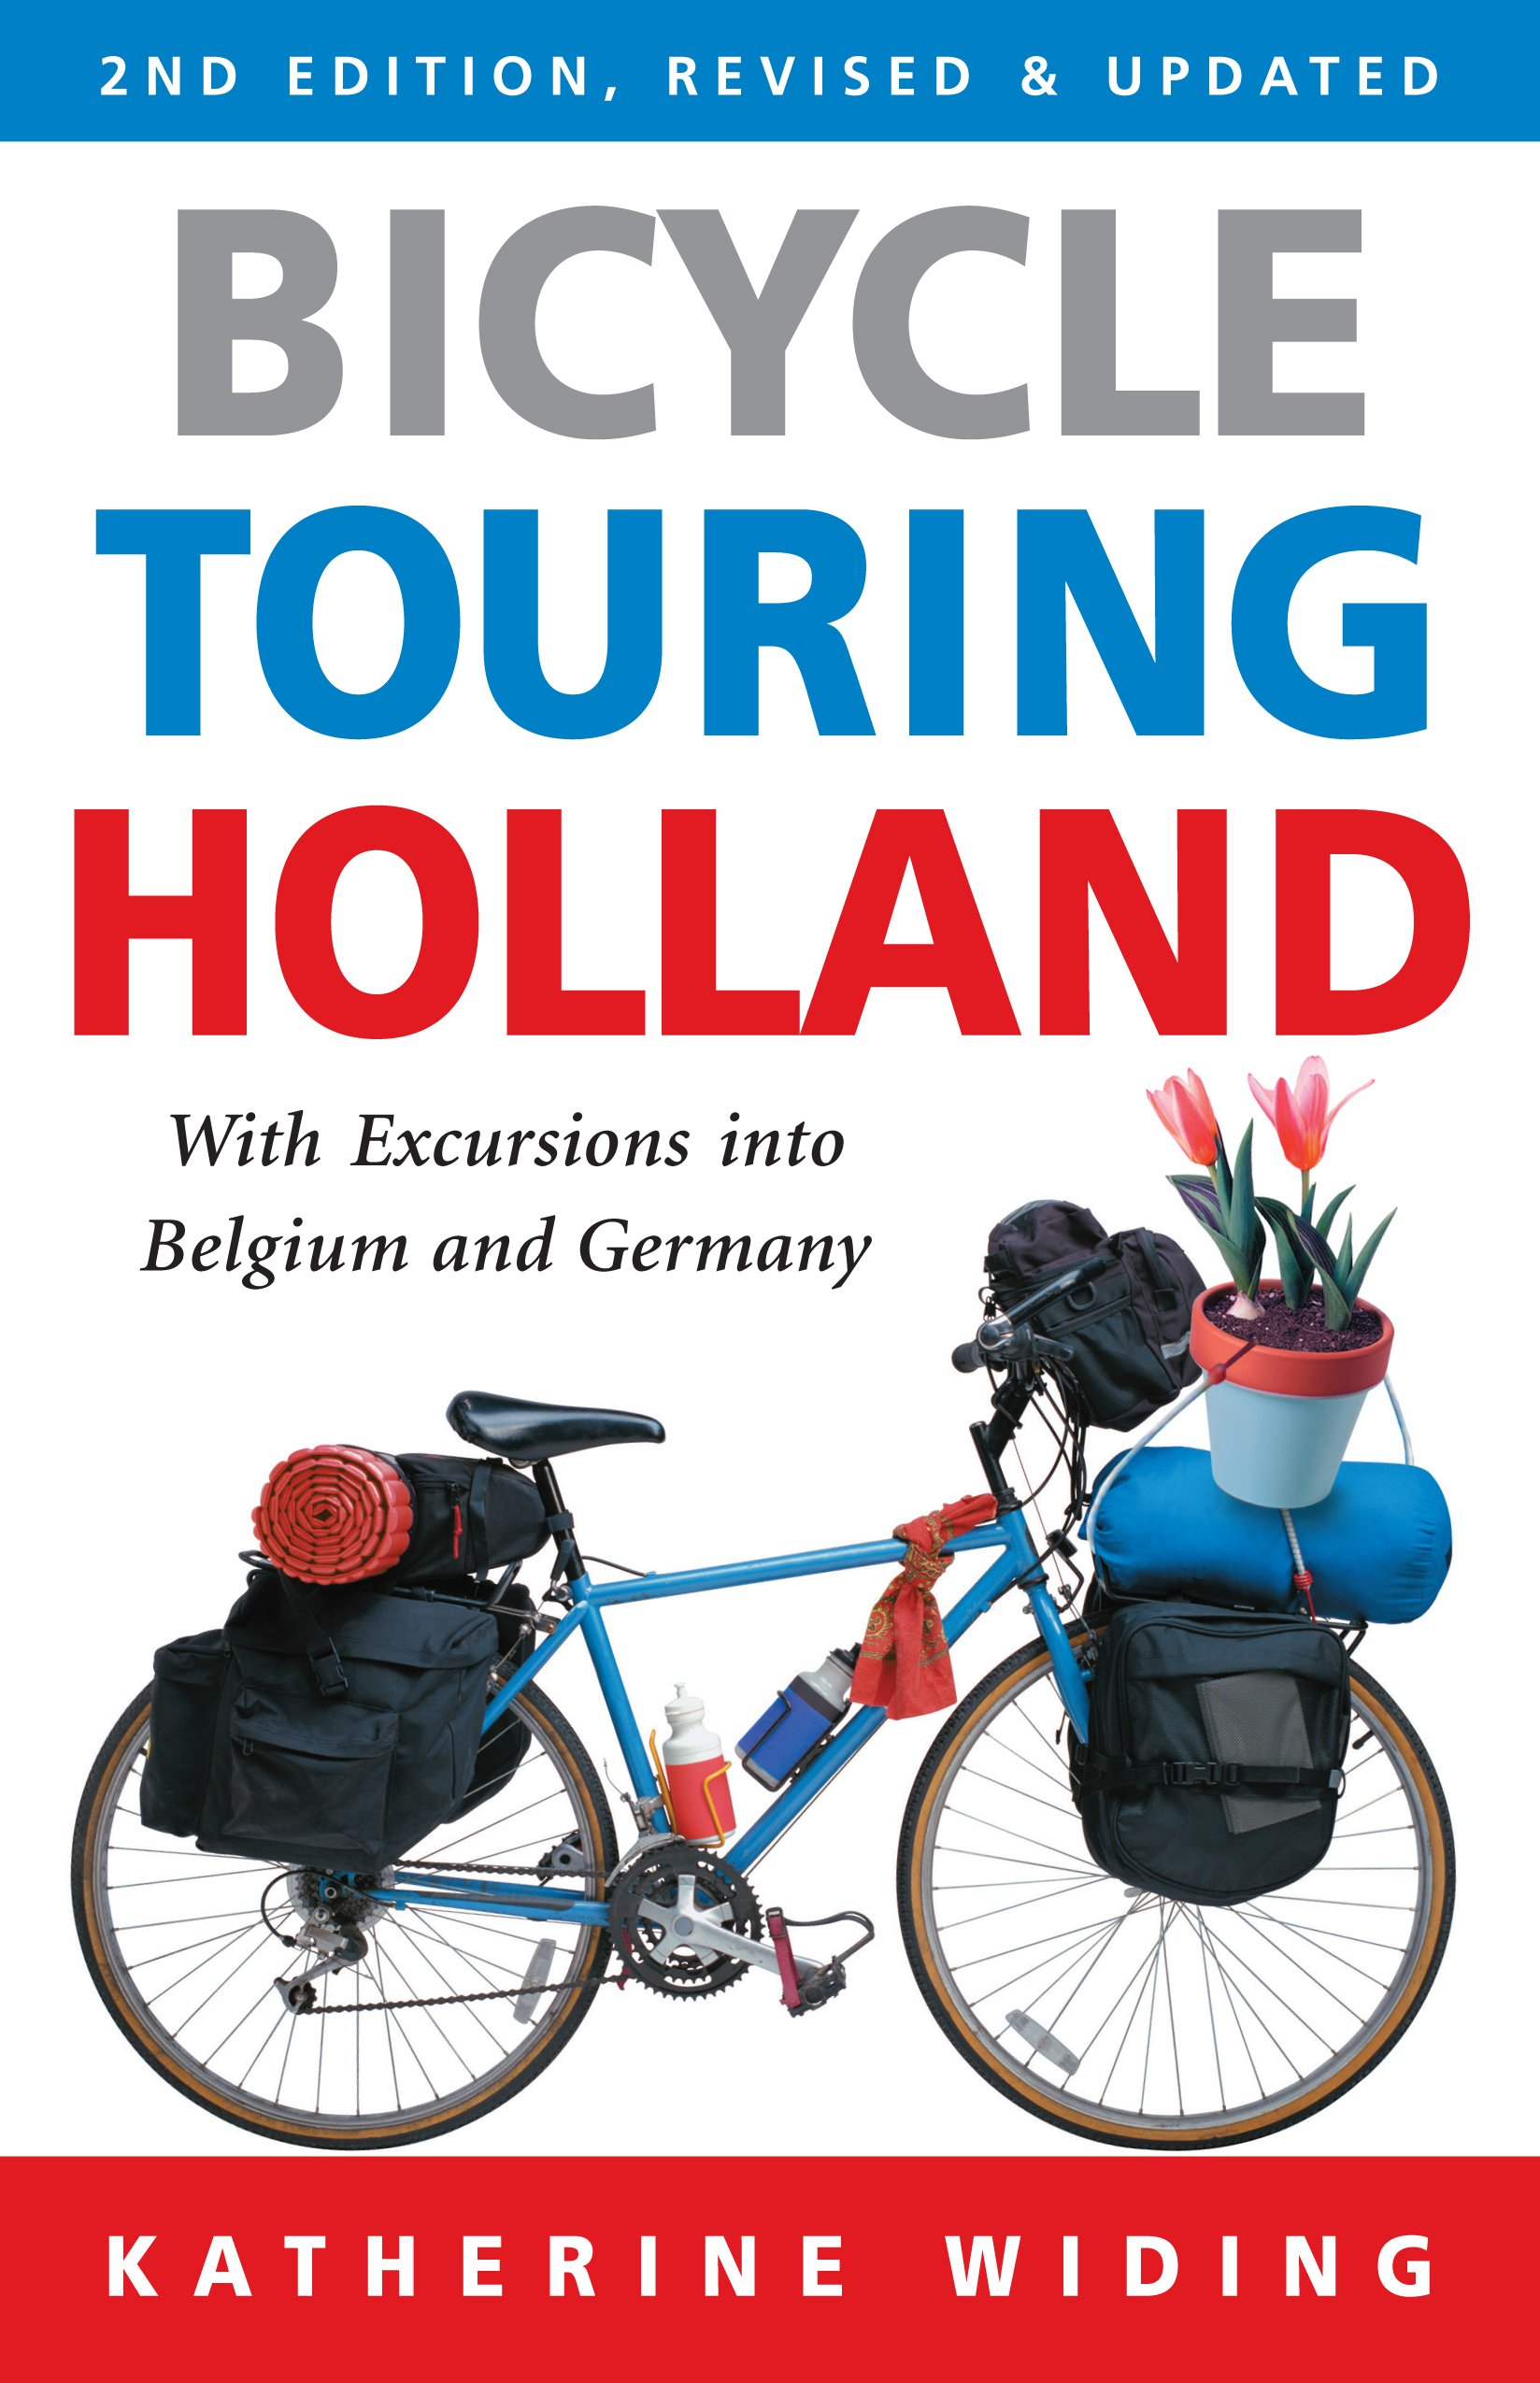 Bicycle Touring Holland Excursions Neighboring product image